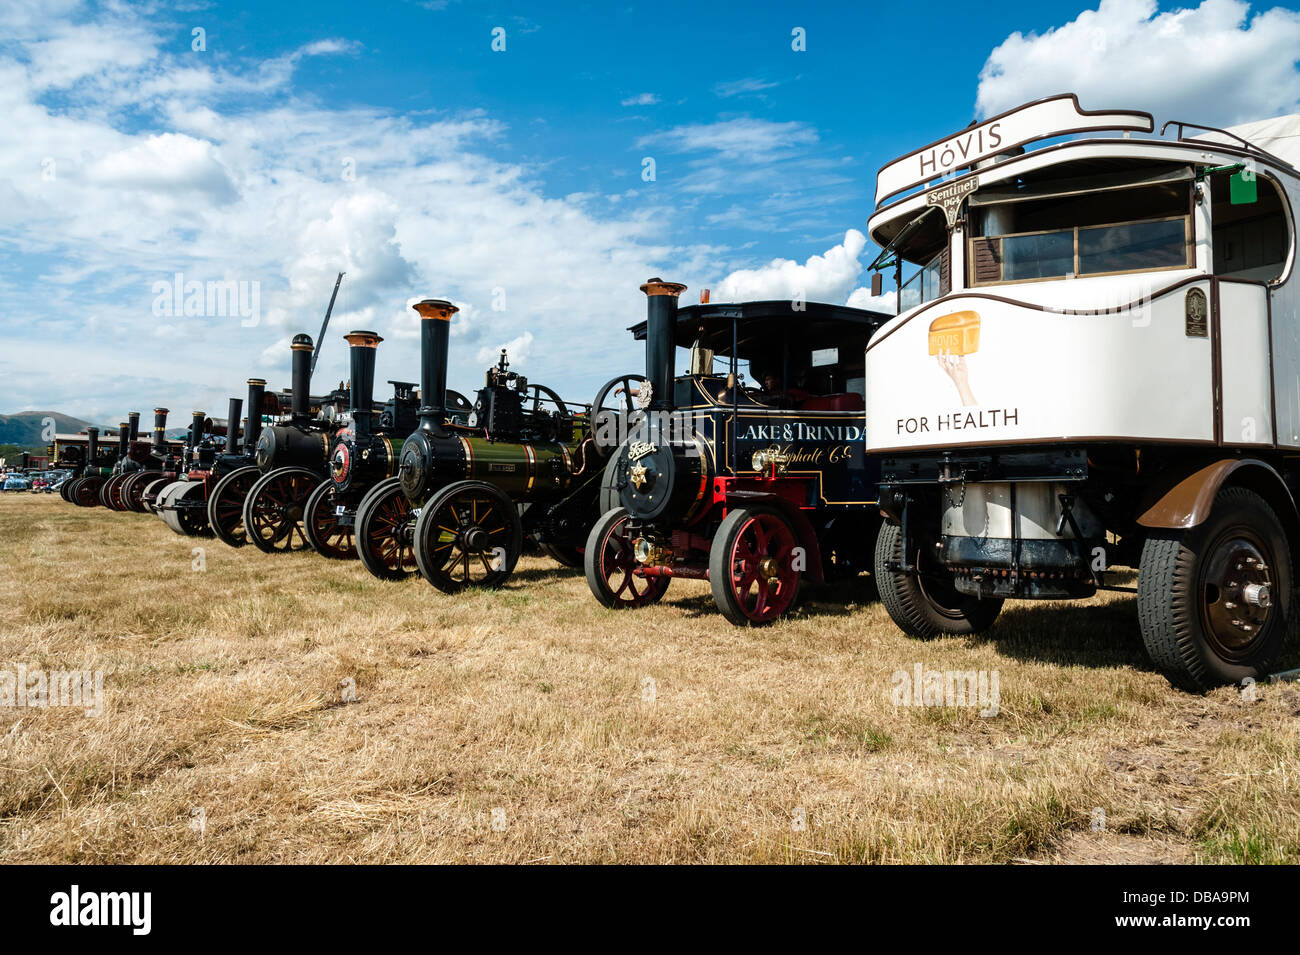 Line up of traction engines at Welland steam rally, near the Malvern Hills, Worcestershire, UK. - Stock Image